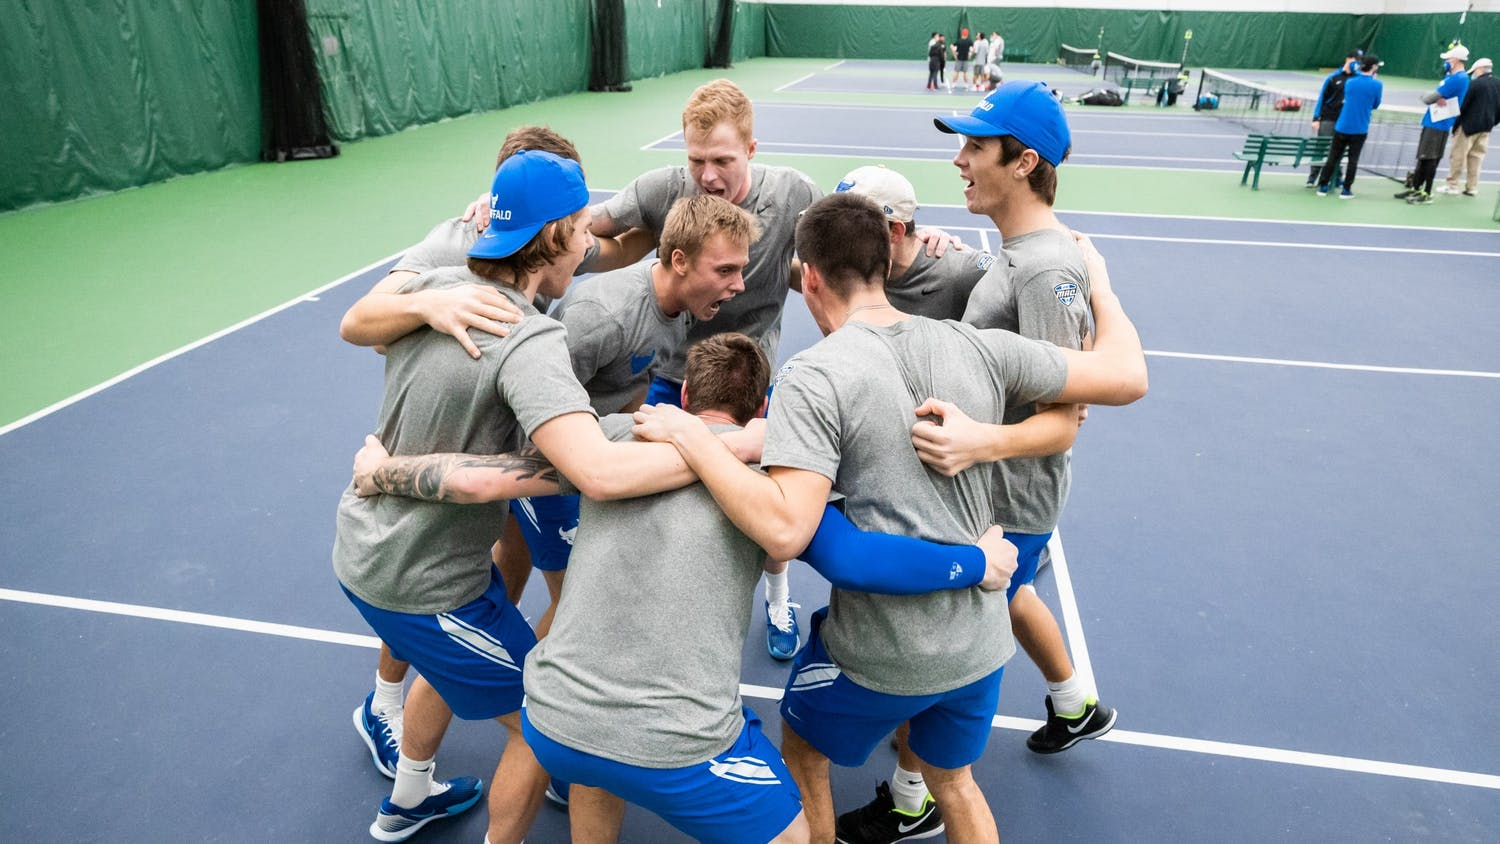 Since head coach Lee Nickell took over the program in 2009, the UB men's tennis team has utilized international recruiting to build a competitive team.